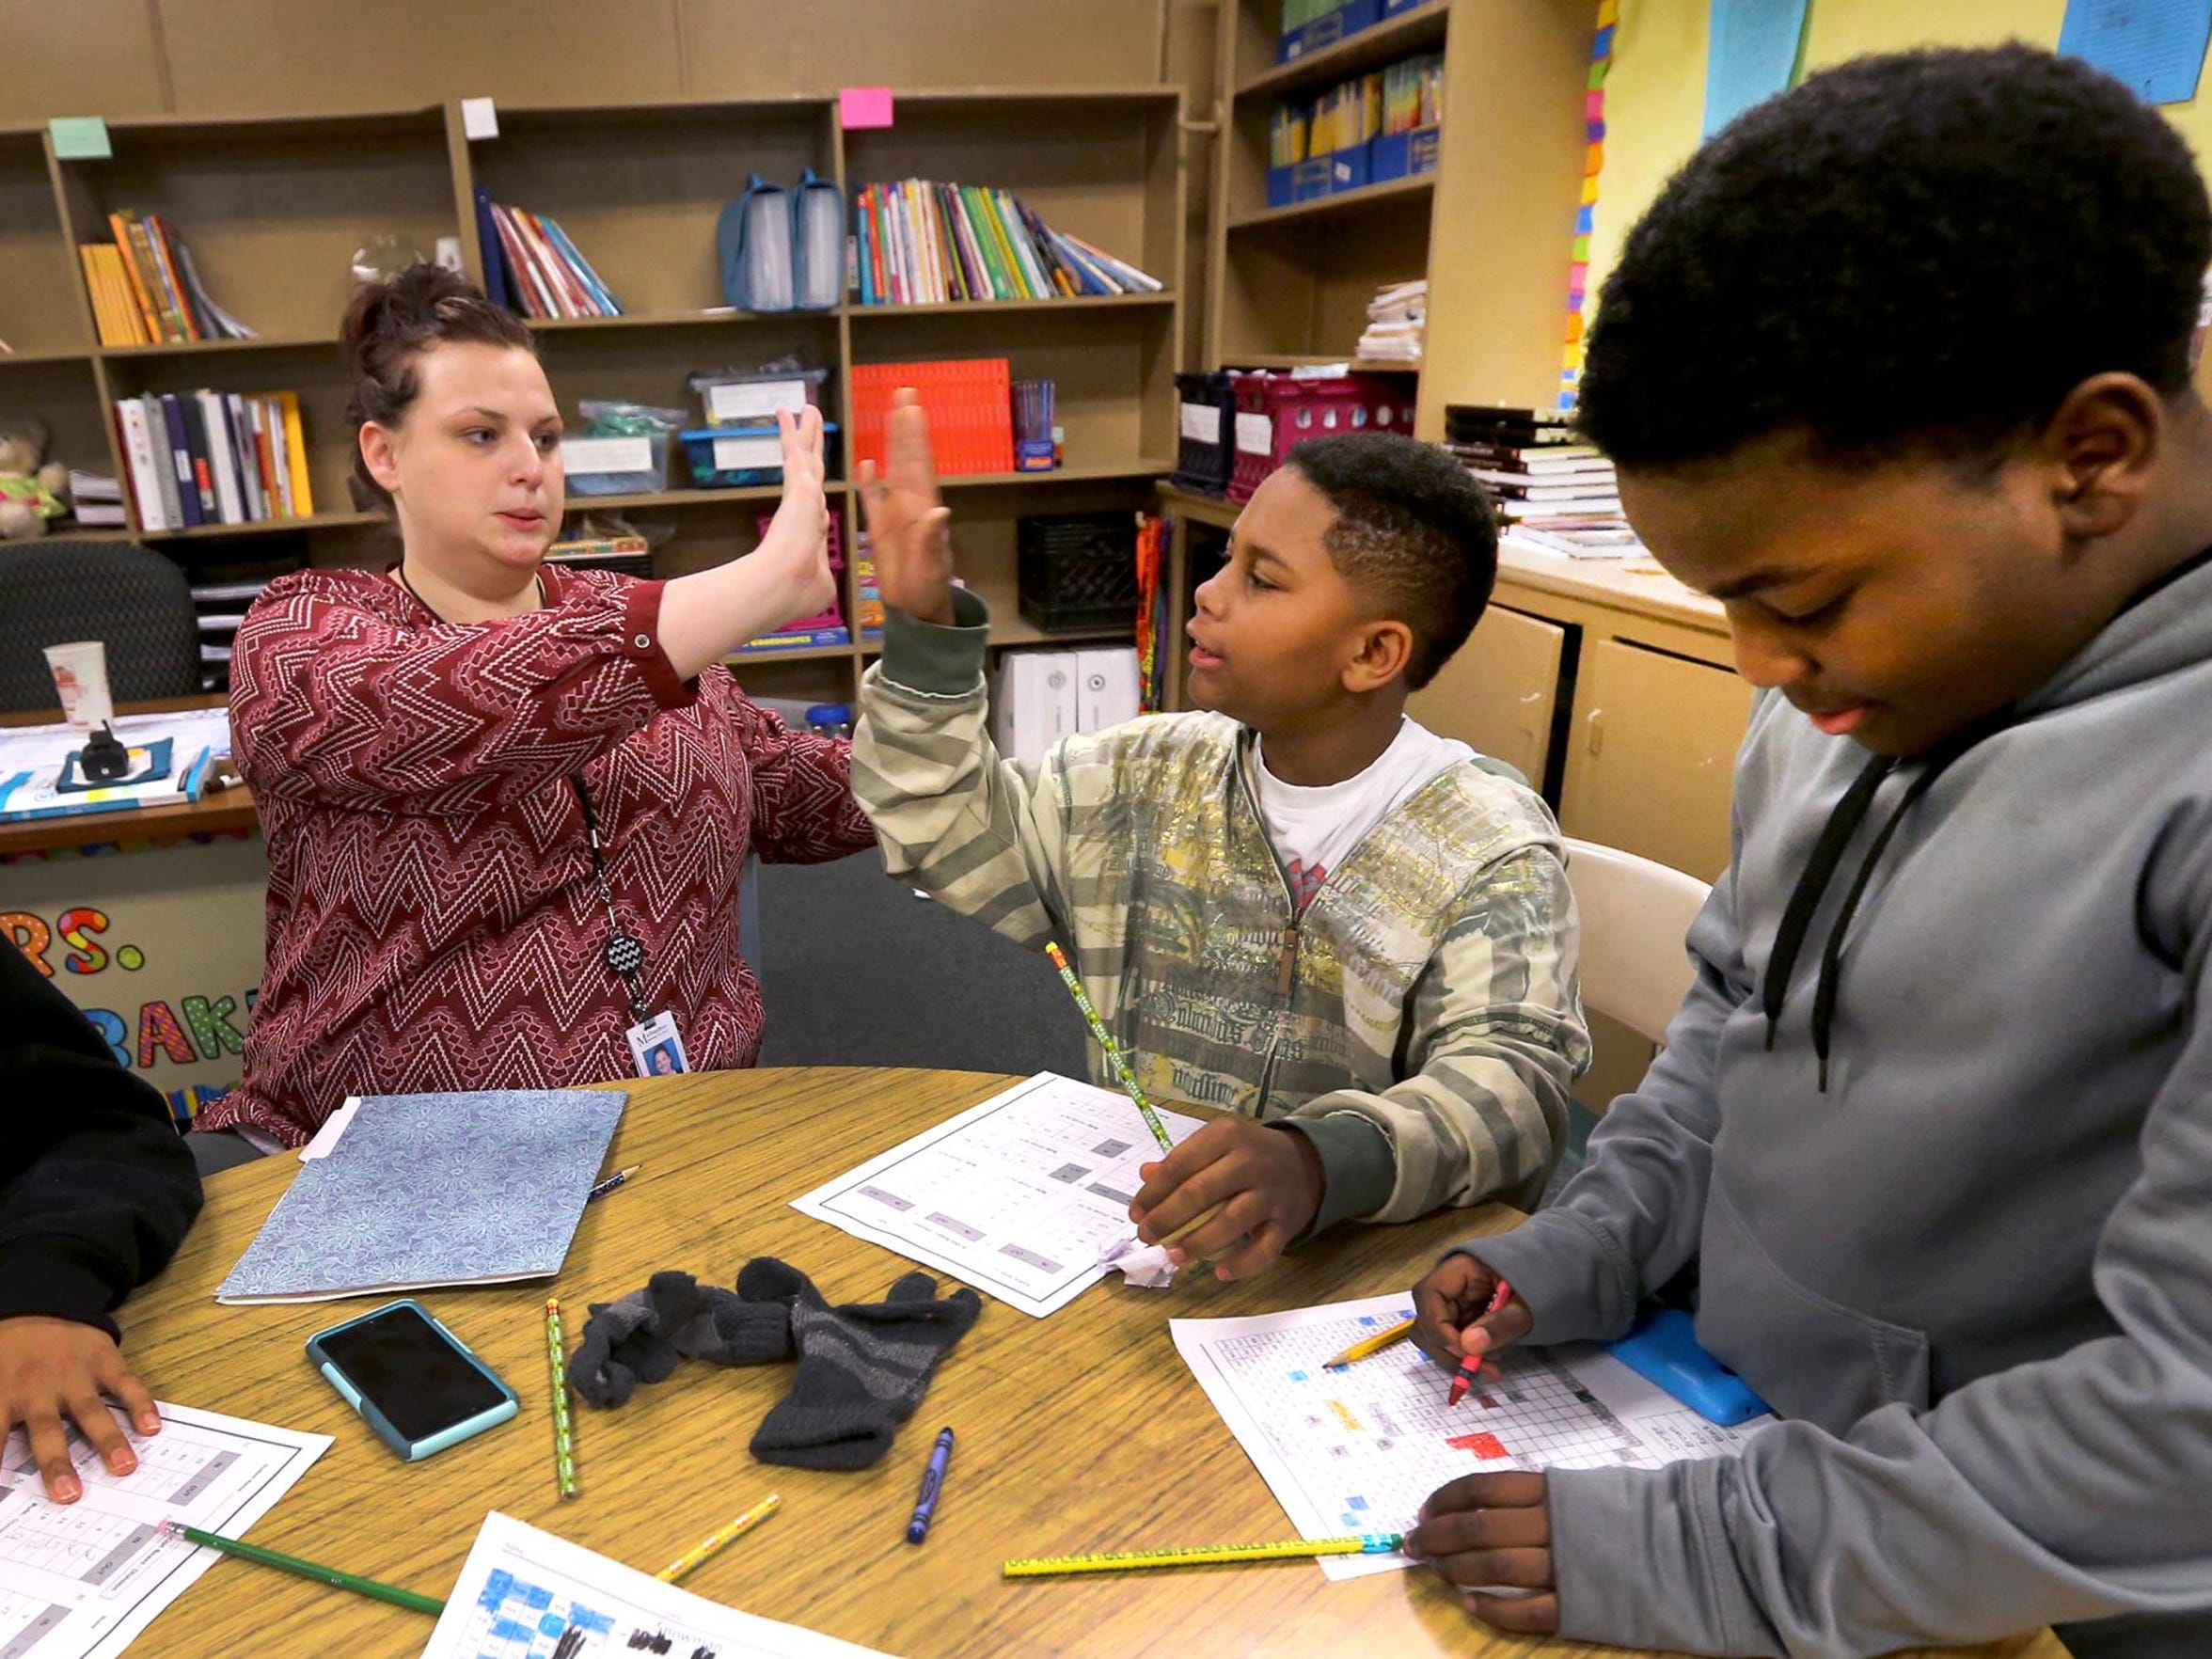 Cortney Cagle, left, a tutoring coordinator at Bradley Academy, gives Daquan Malone, center, a high-five after answering a question right as Malone works on a worksheet during the Bradley Academy After School Tutoring Program, on Friday, Jan. 8, 2016. Keino Franklin, right, works on his math worksheet during the program.